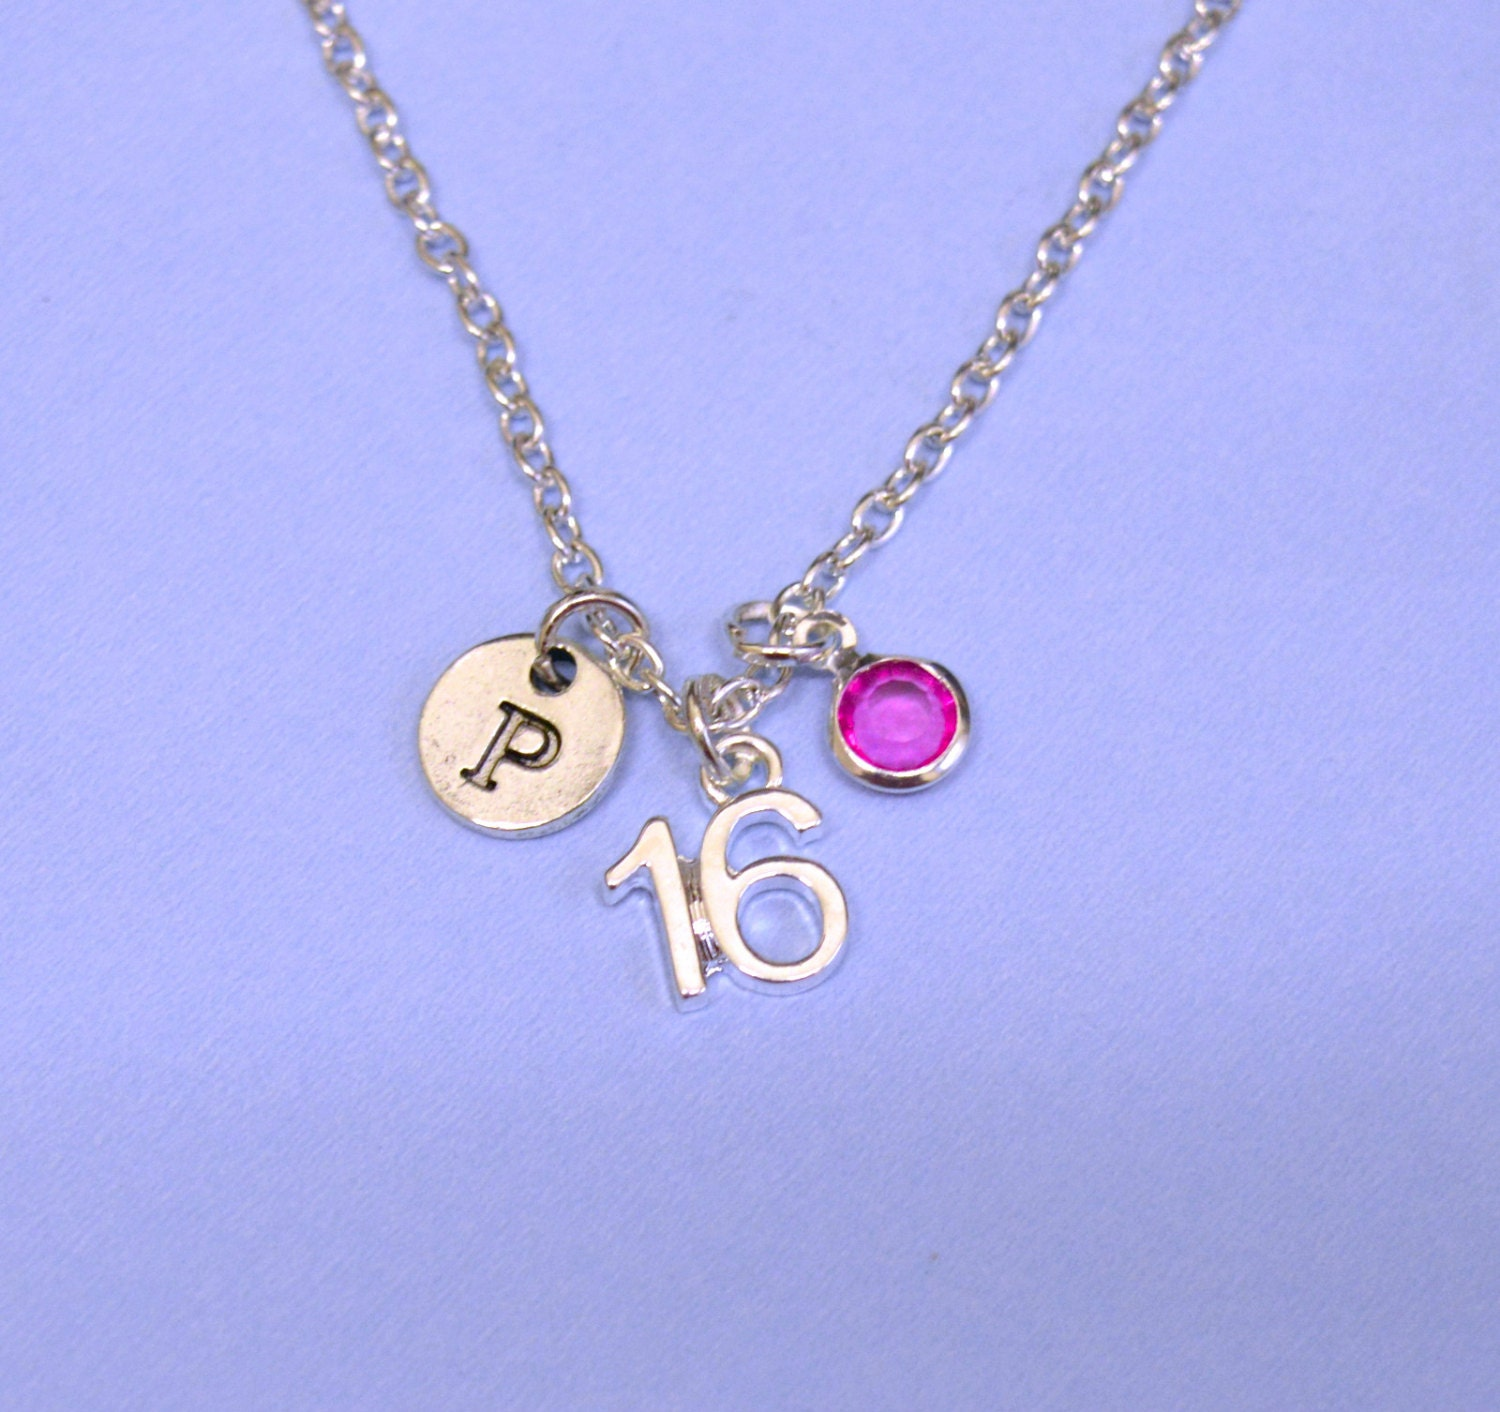 16th Sweet 16 Sweet Sixtreen Birthday Gift Necklace Jewelry